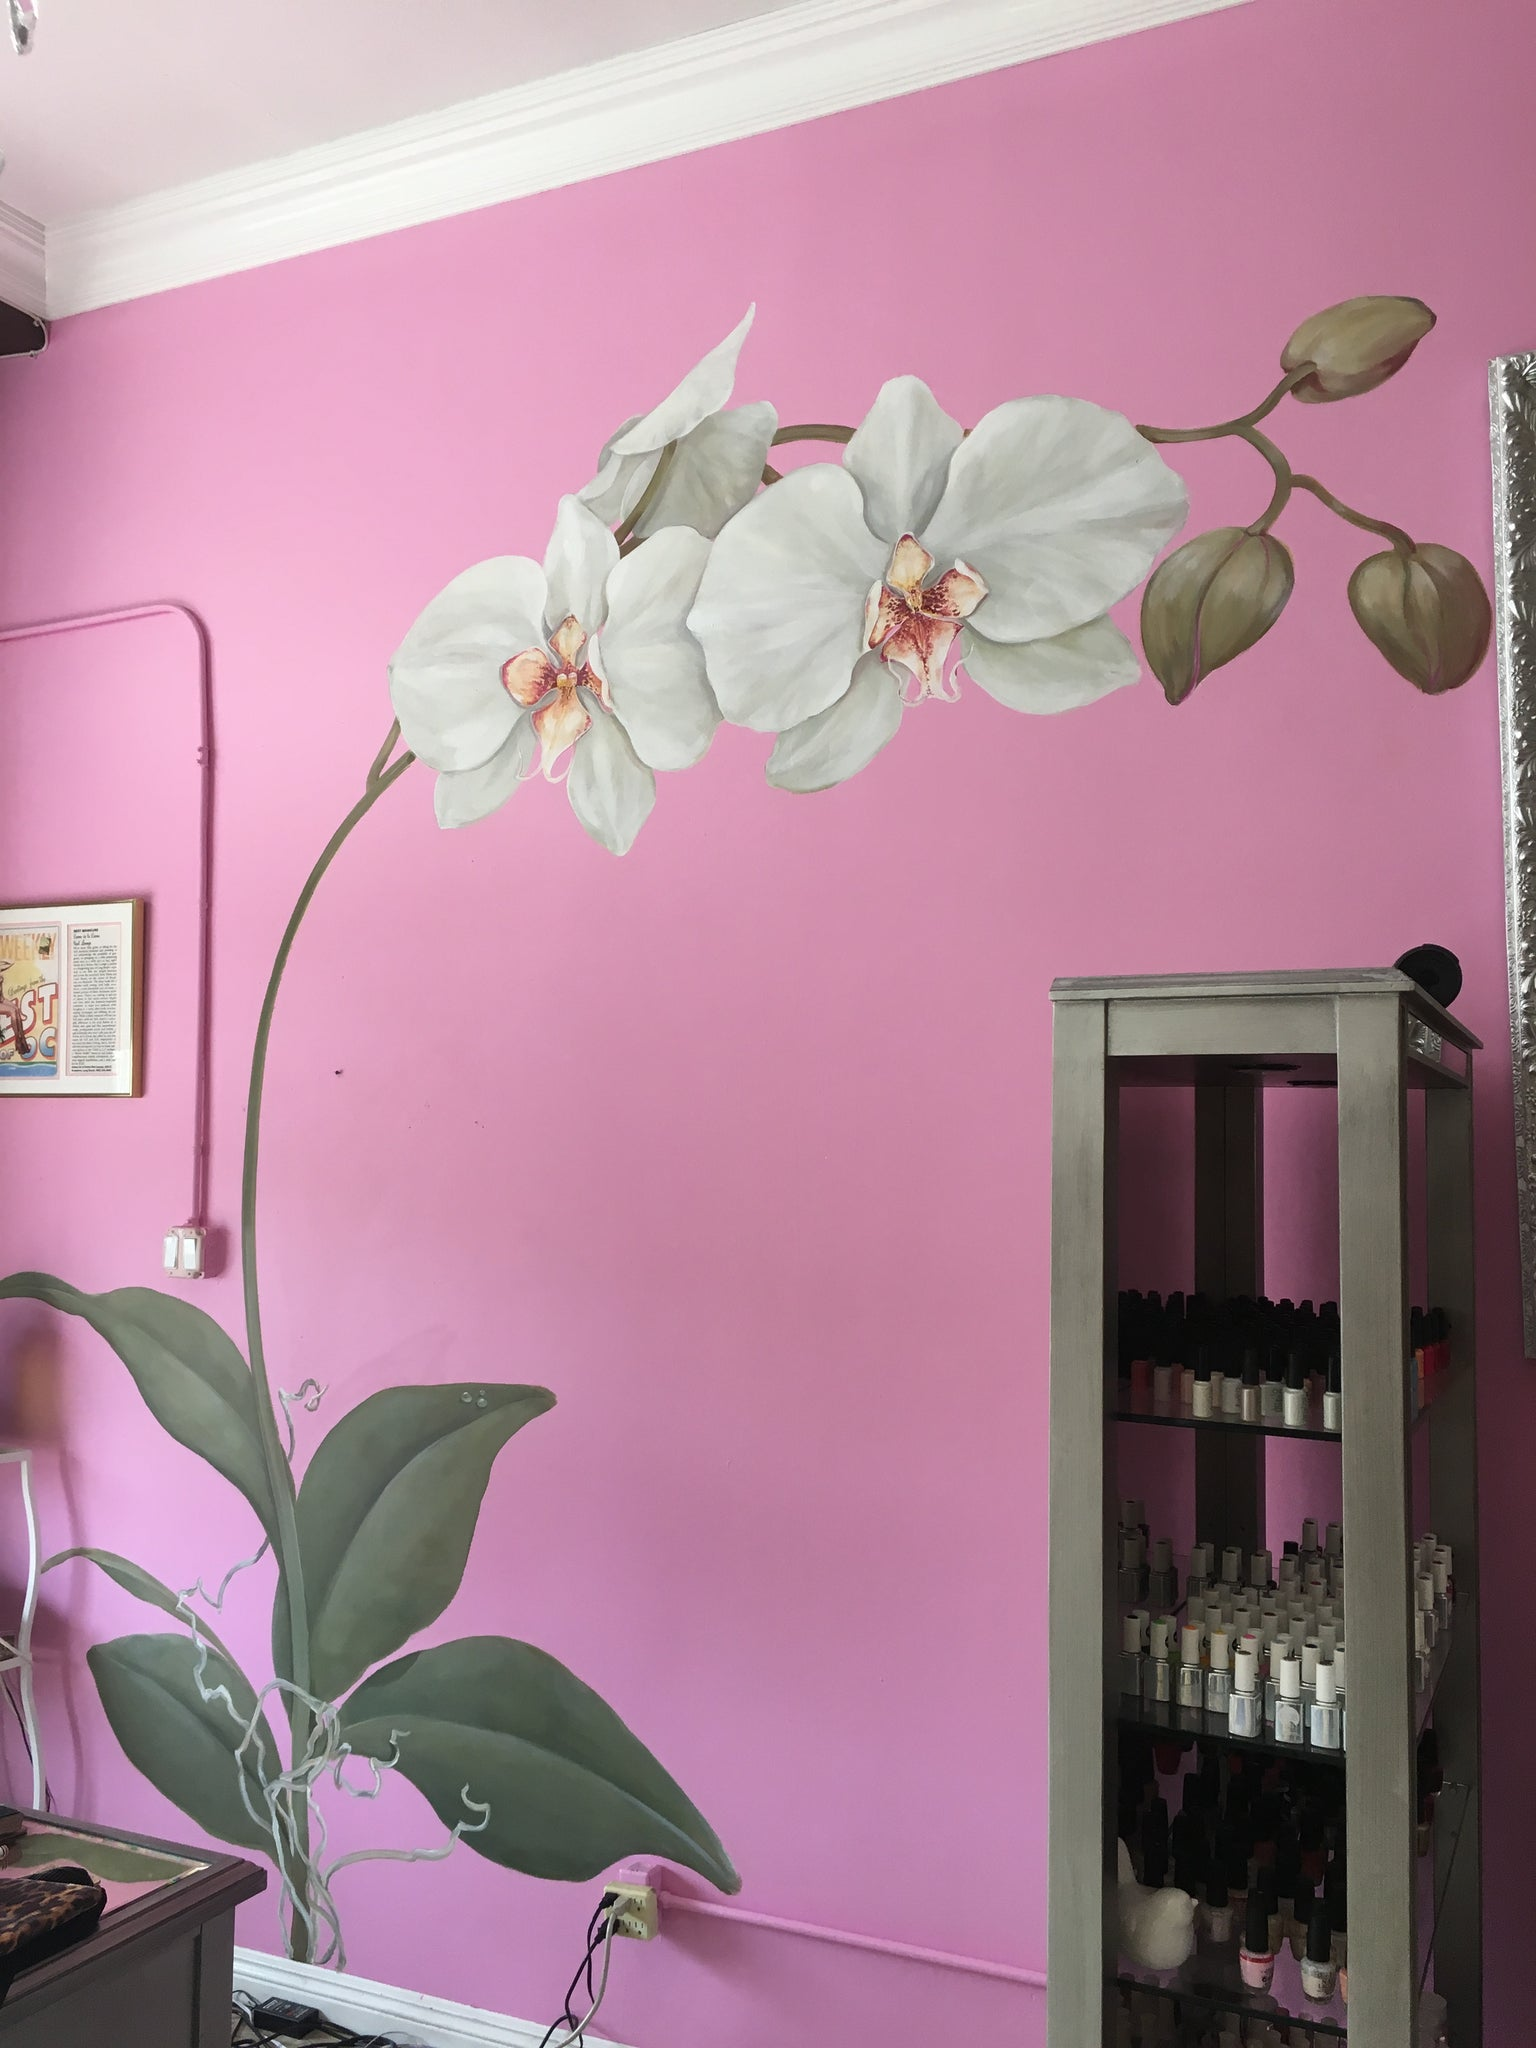 Large decorative orchid painted in my local nail salon wrapping around the mirror